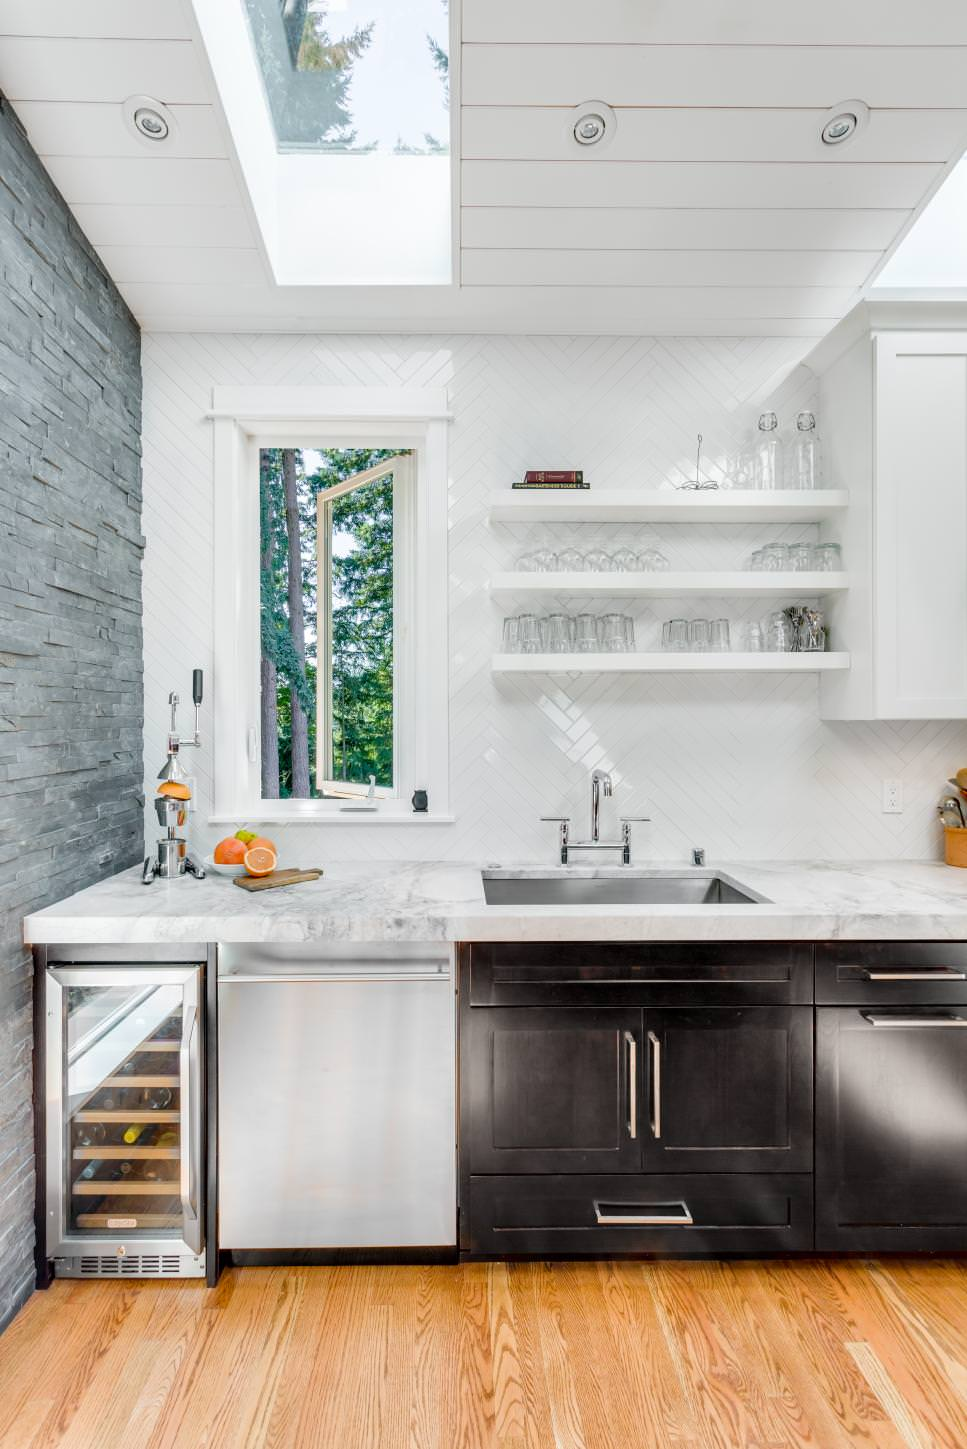 White Contemporary Kitchen With DIY Shelves